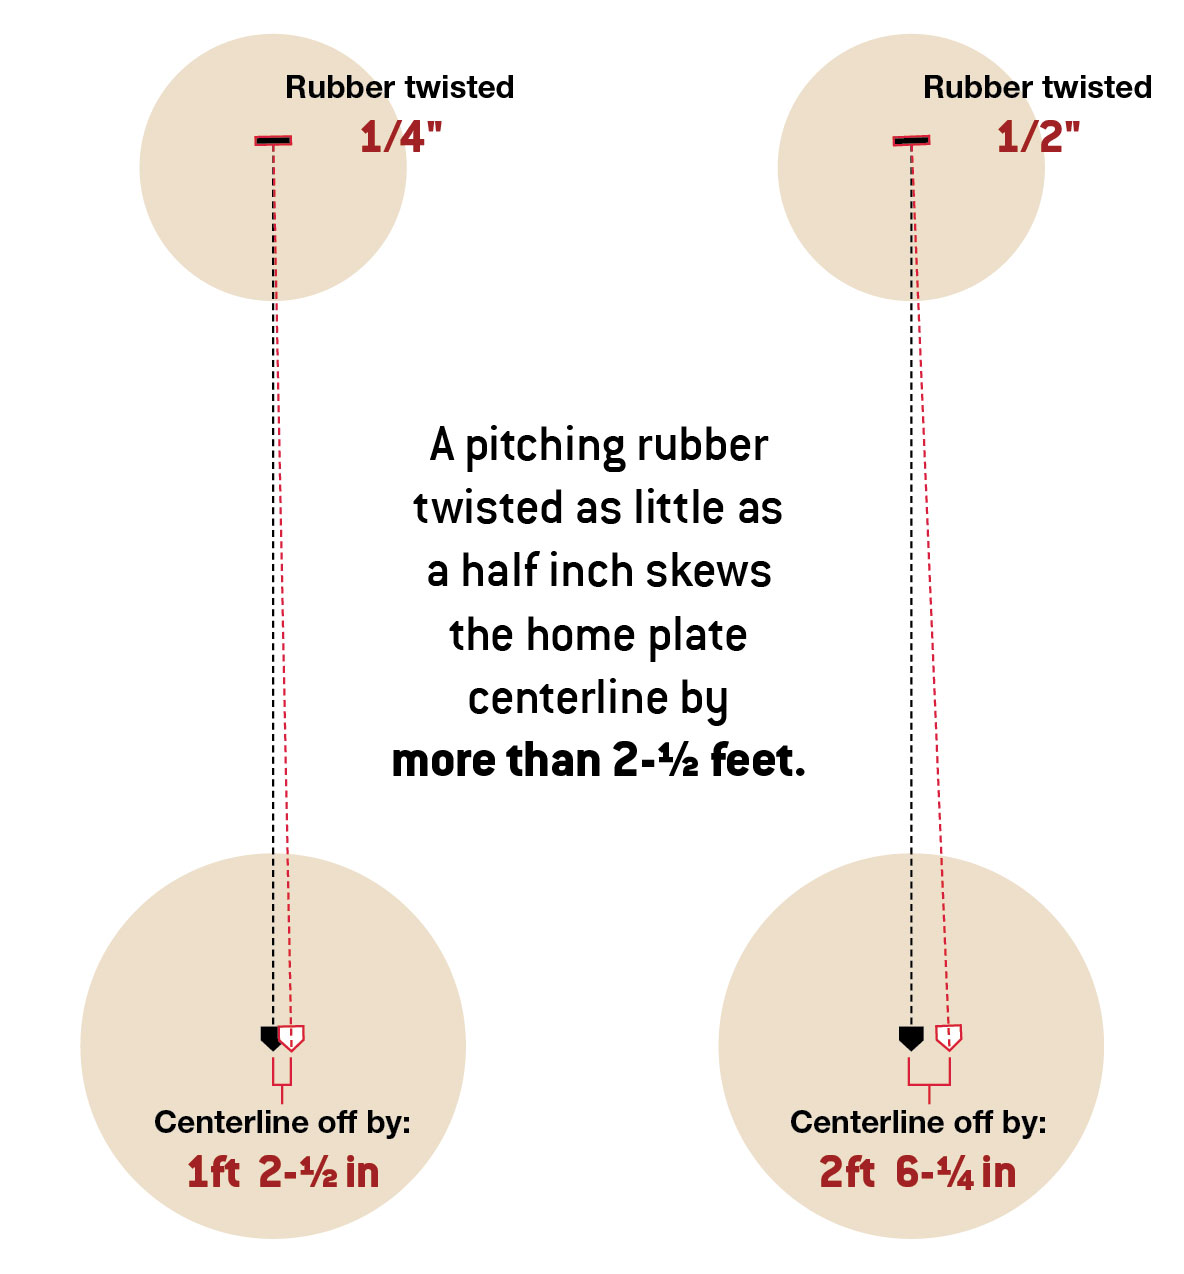 Beacon Pitching Rubber Alignment Diagram